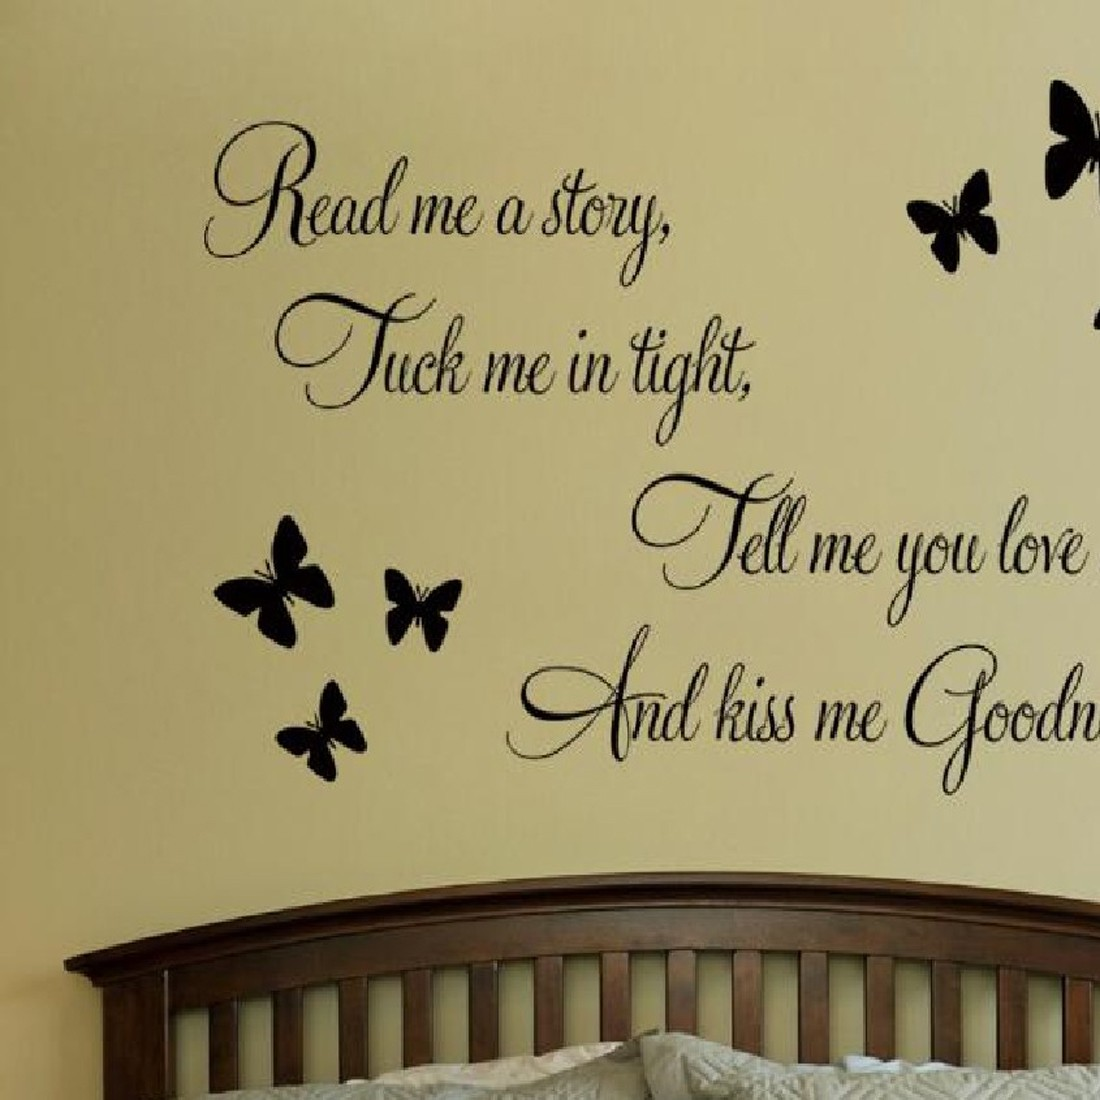 Beautiful Words On Walls Decor Sketch - Art & Wall Decor - hecatalog ...